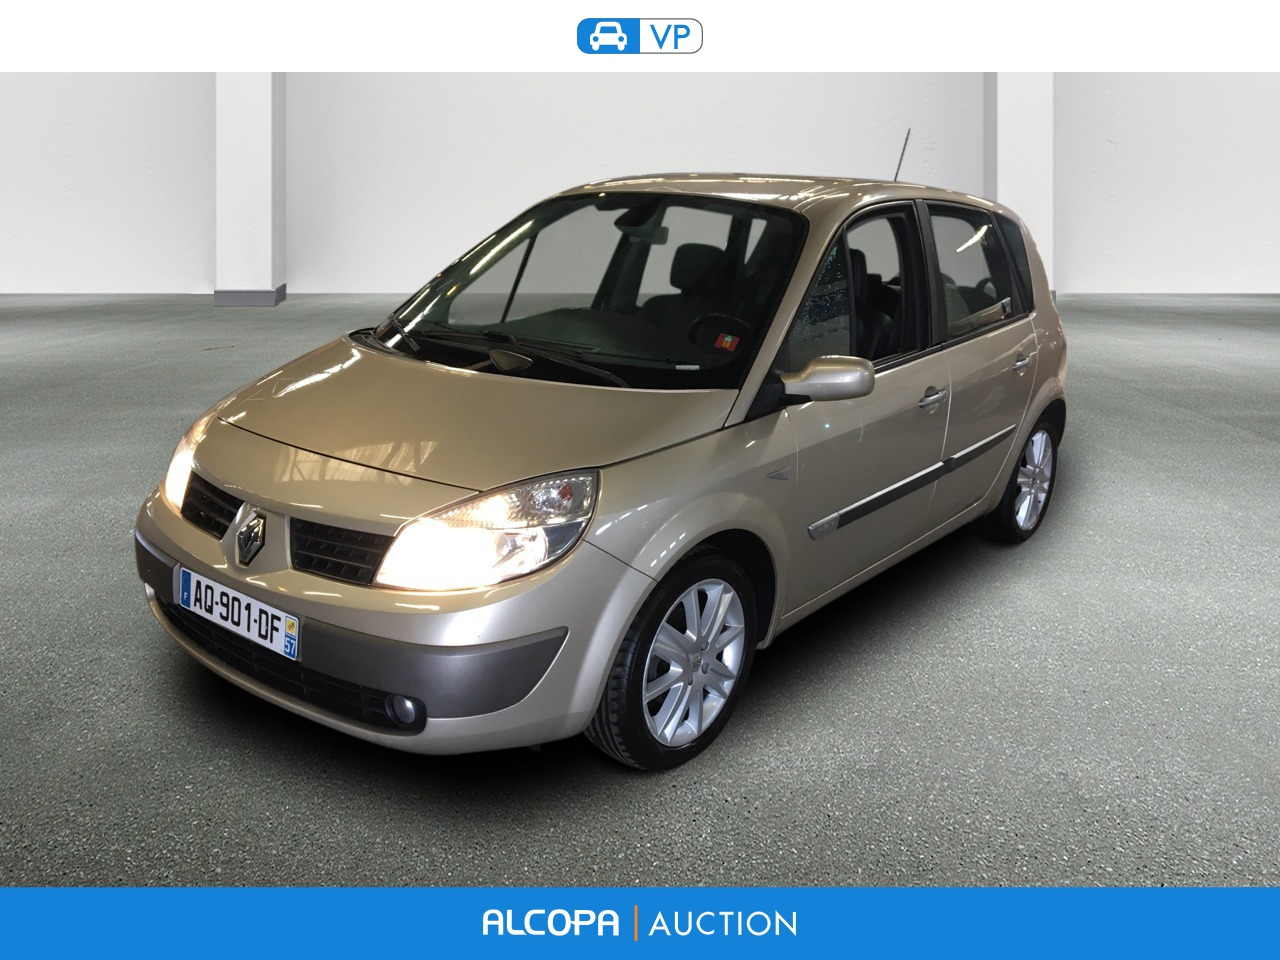 renault scenic ii scenic 1 5 dci 105 euro 4 exception alcopa auction. Black Bedroom Furniture Sets. Home Design Ideas